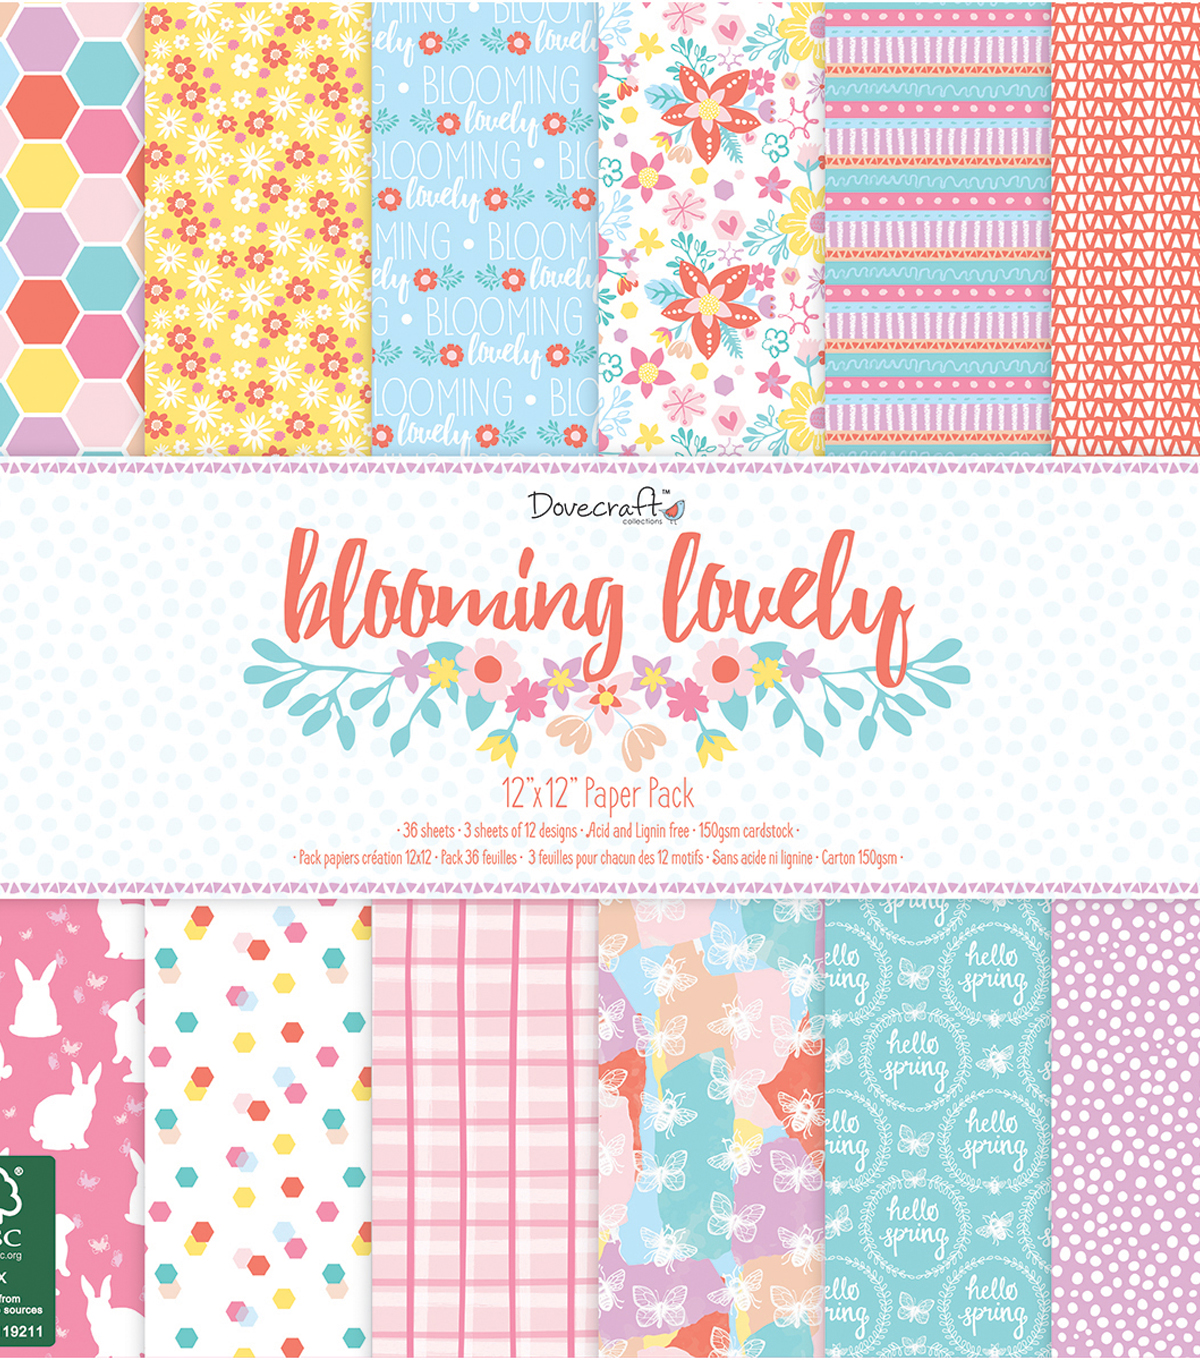 Dovecraft Blooming Lovely 36 sheets 12\u0027\u0027x12\u0027\u0027 Paper Pad